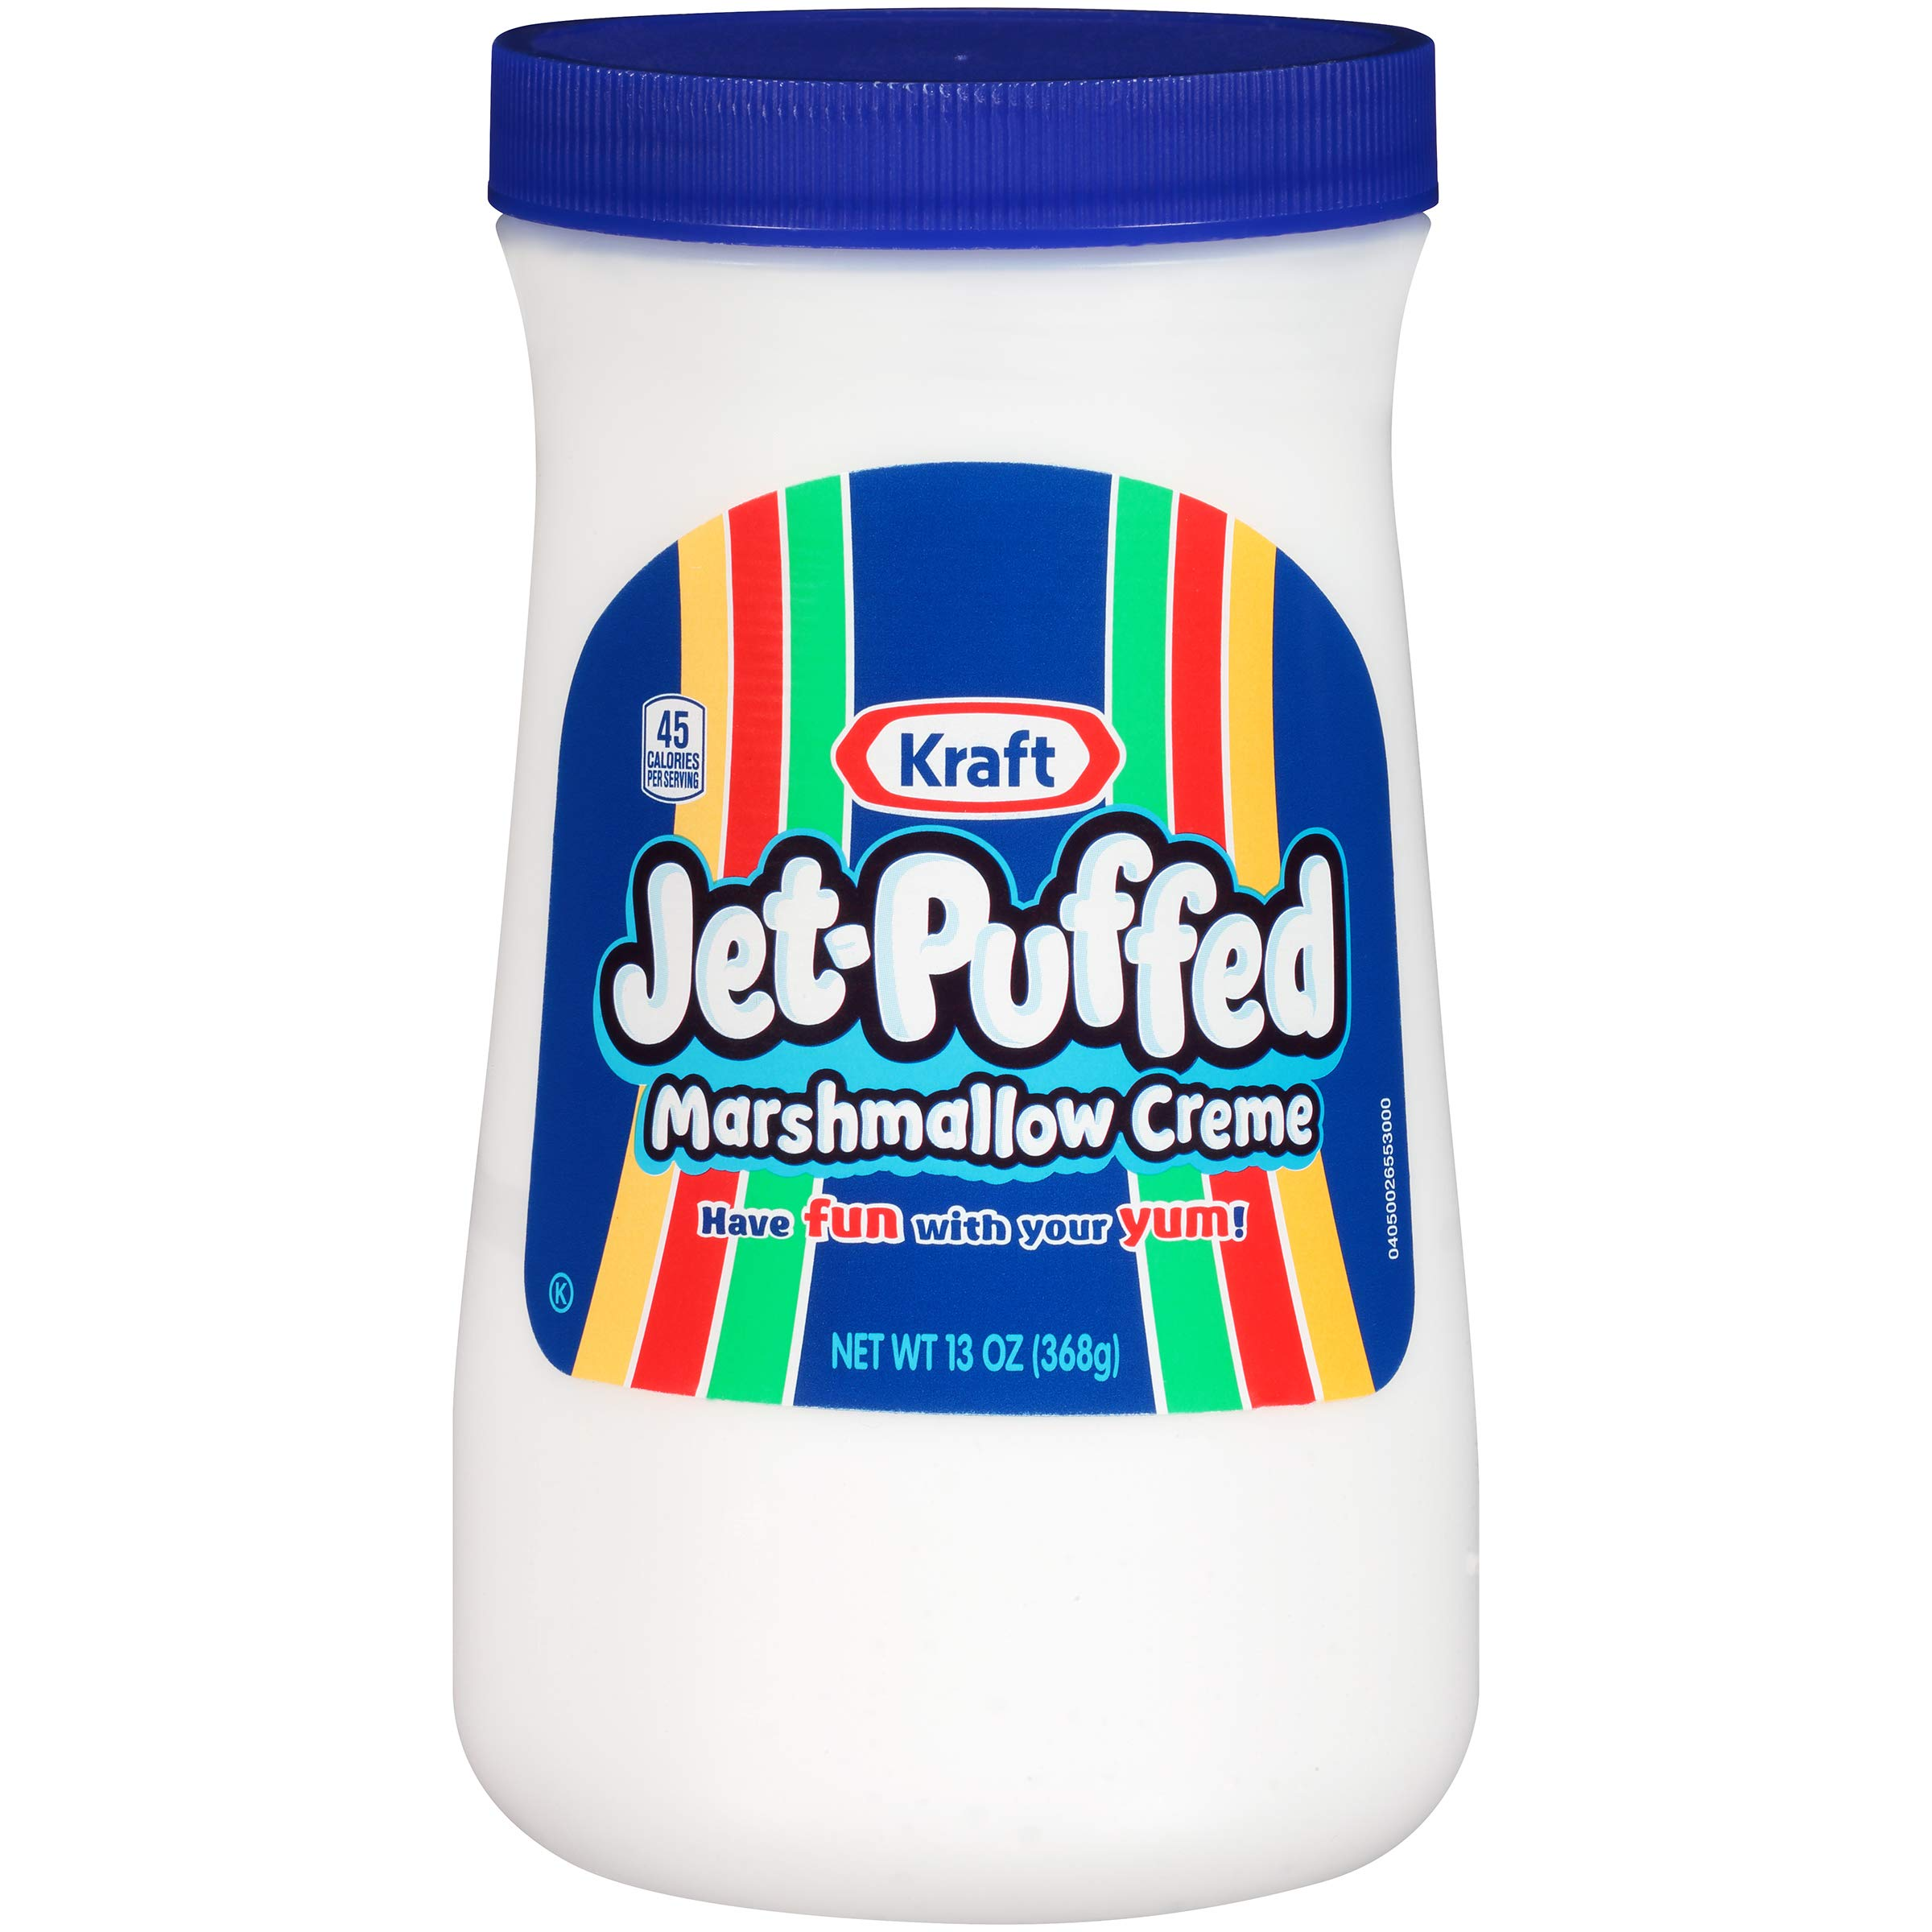 Jet Puffed Marshmallow Creme (13 oz Jars, Pack of 6) by Jet-Puffed